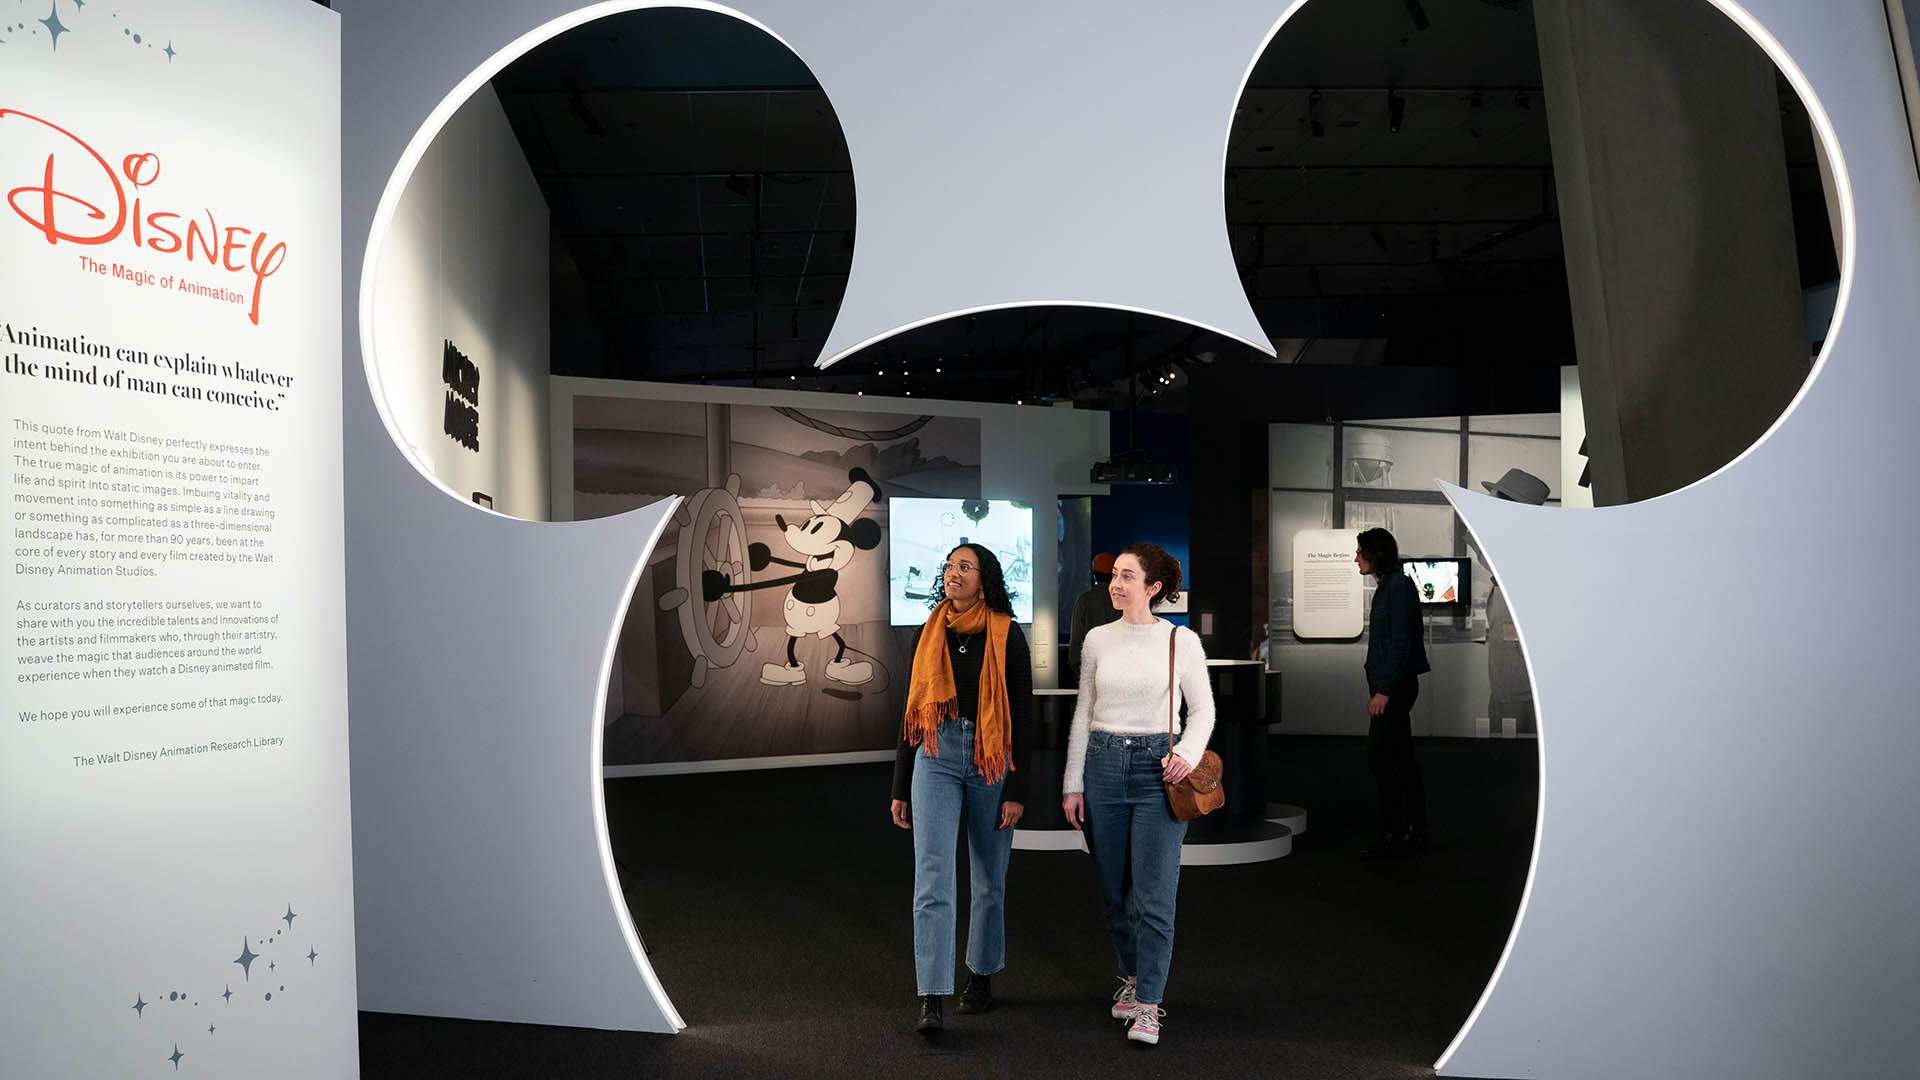 A Look Beyond the Mouse Ears at ACMI's Dazzling New 'Disney: The Magic of Animation' Exhibition